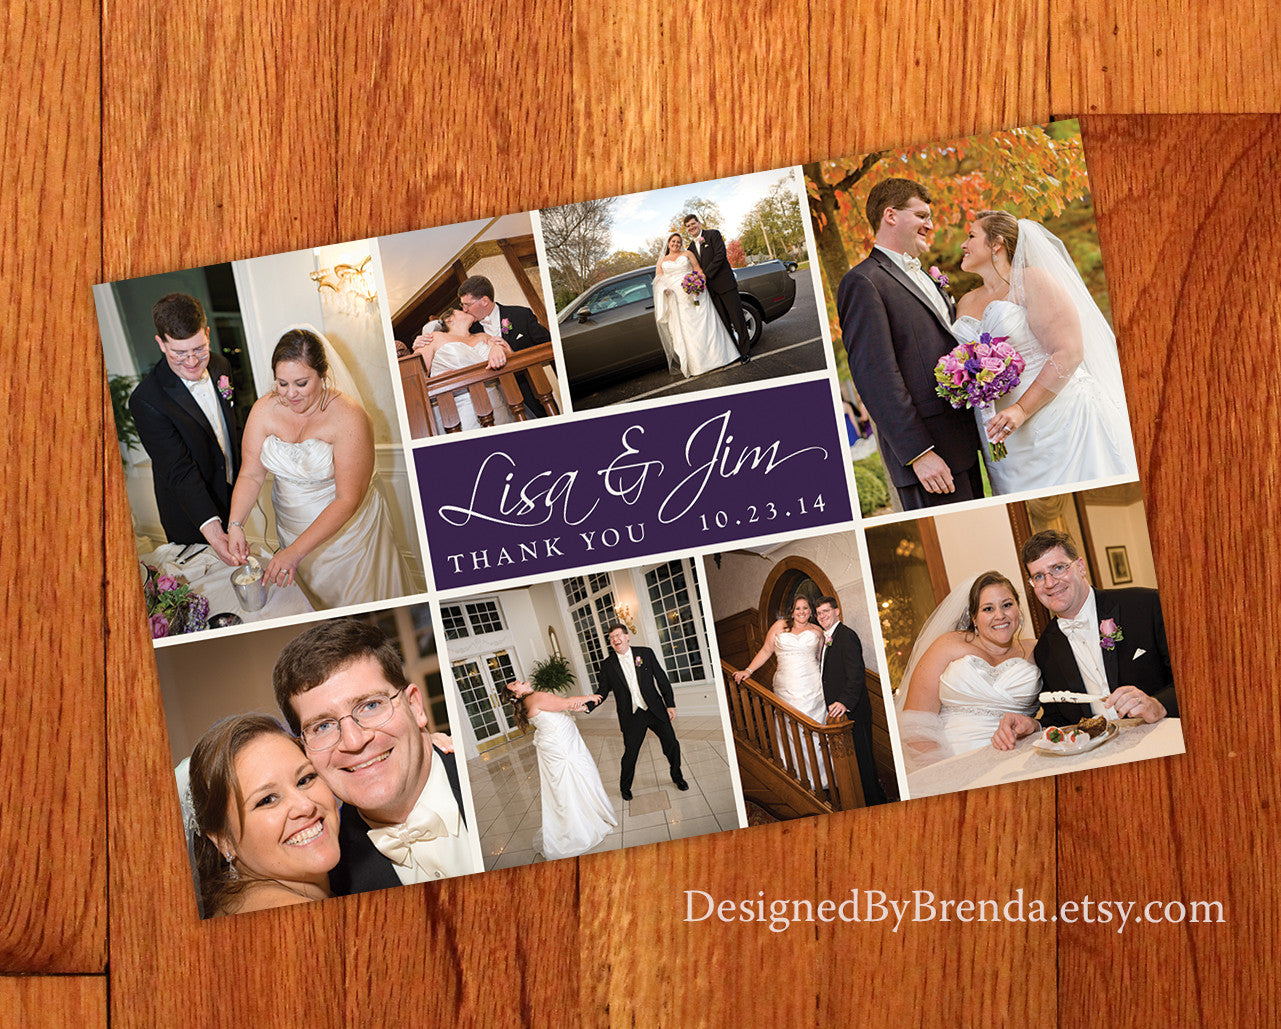 Modern Wedding Thank You Card with Several Photos - Custom Designed Template